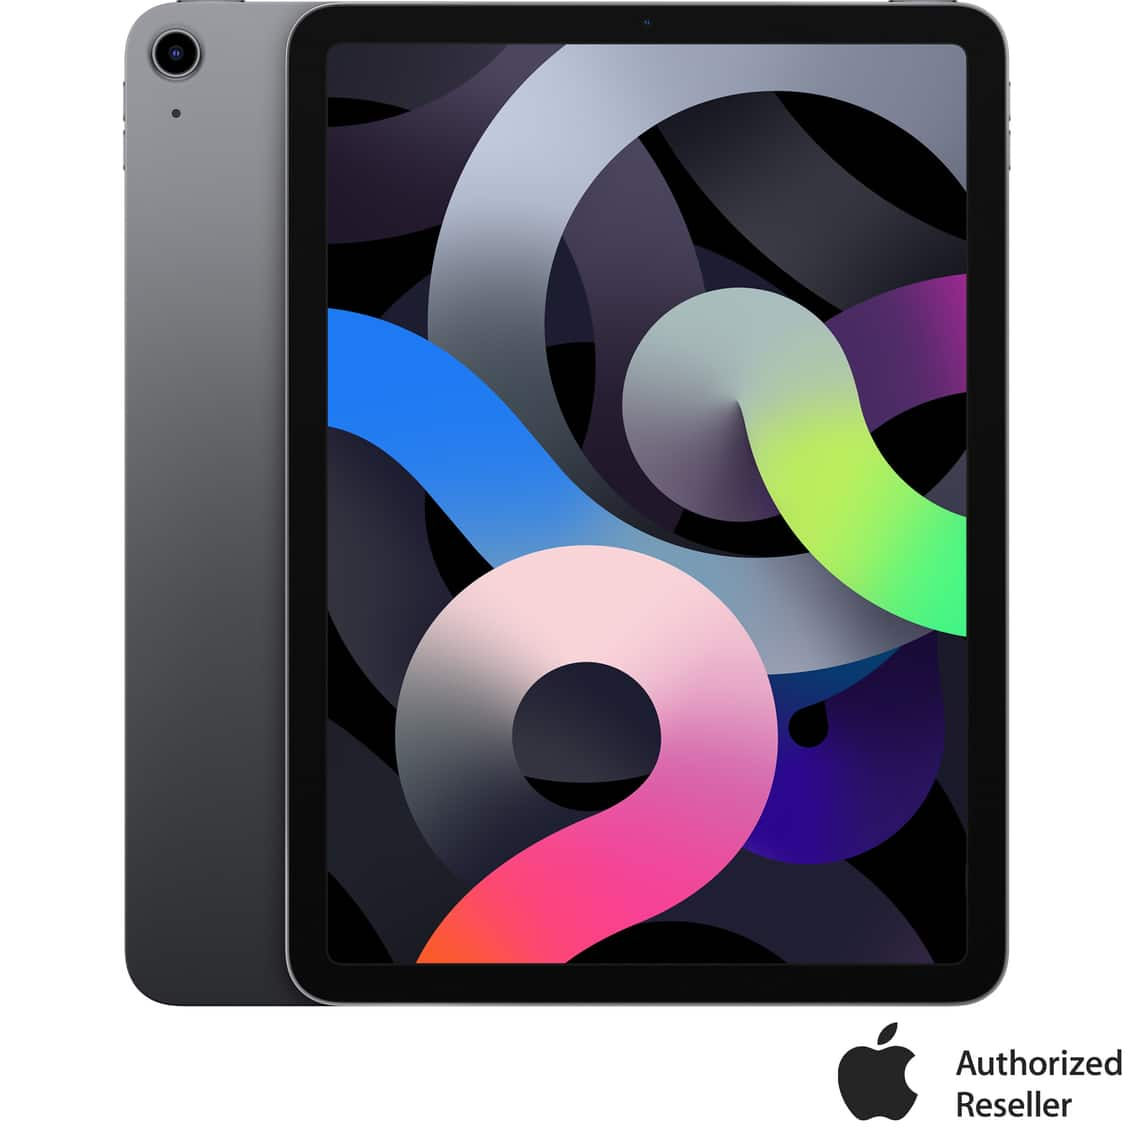 Active Duty Military/Veterans Apple iPad Air 10.9 in. 256GB with Wi-Fi - $549 + Free Shipping